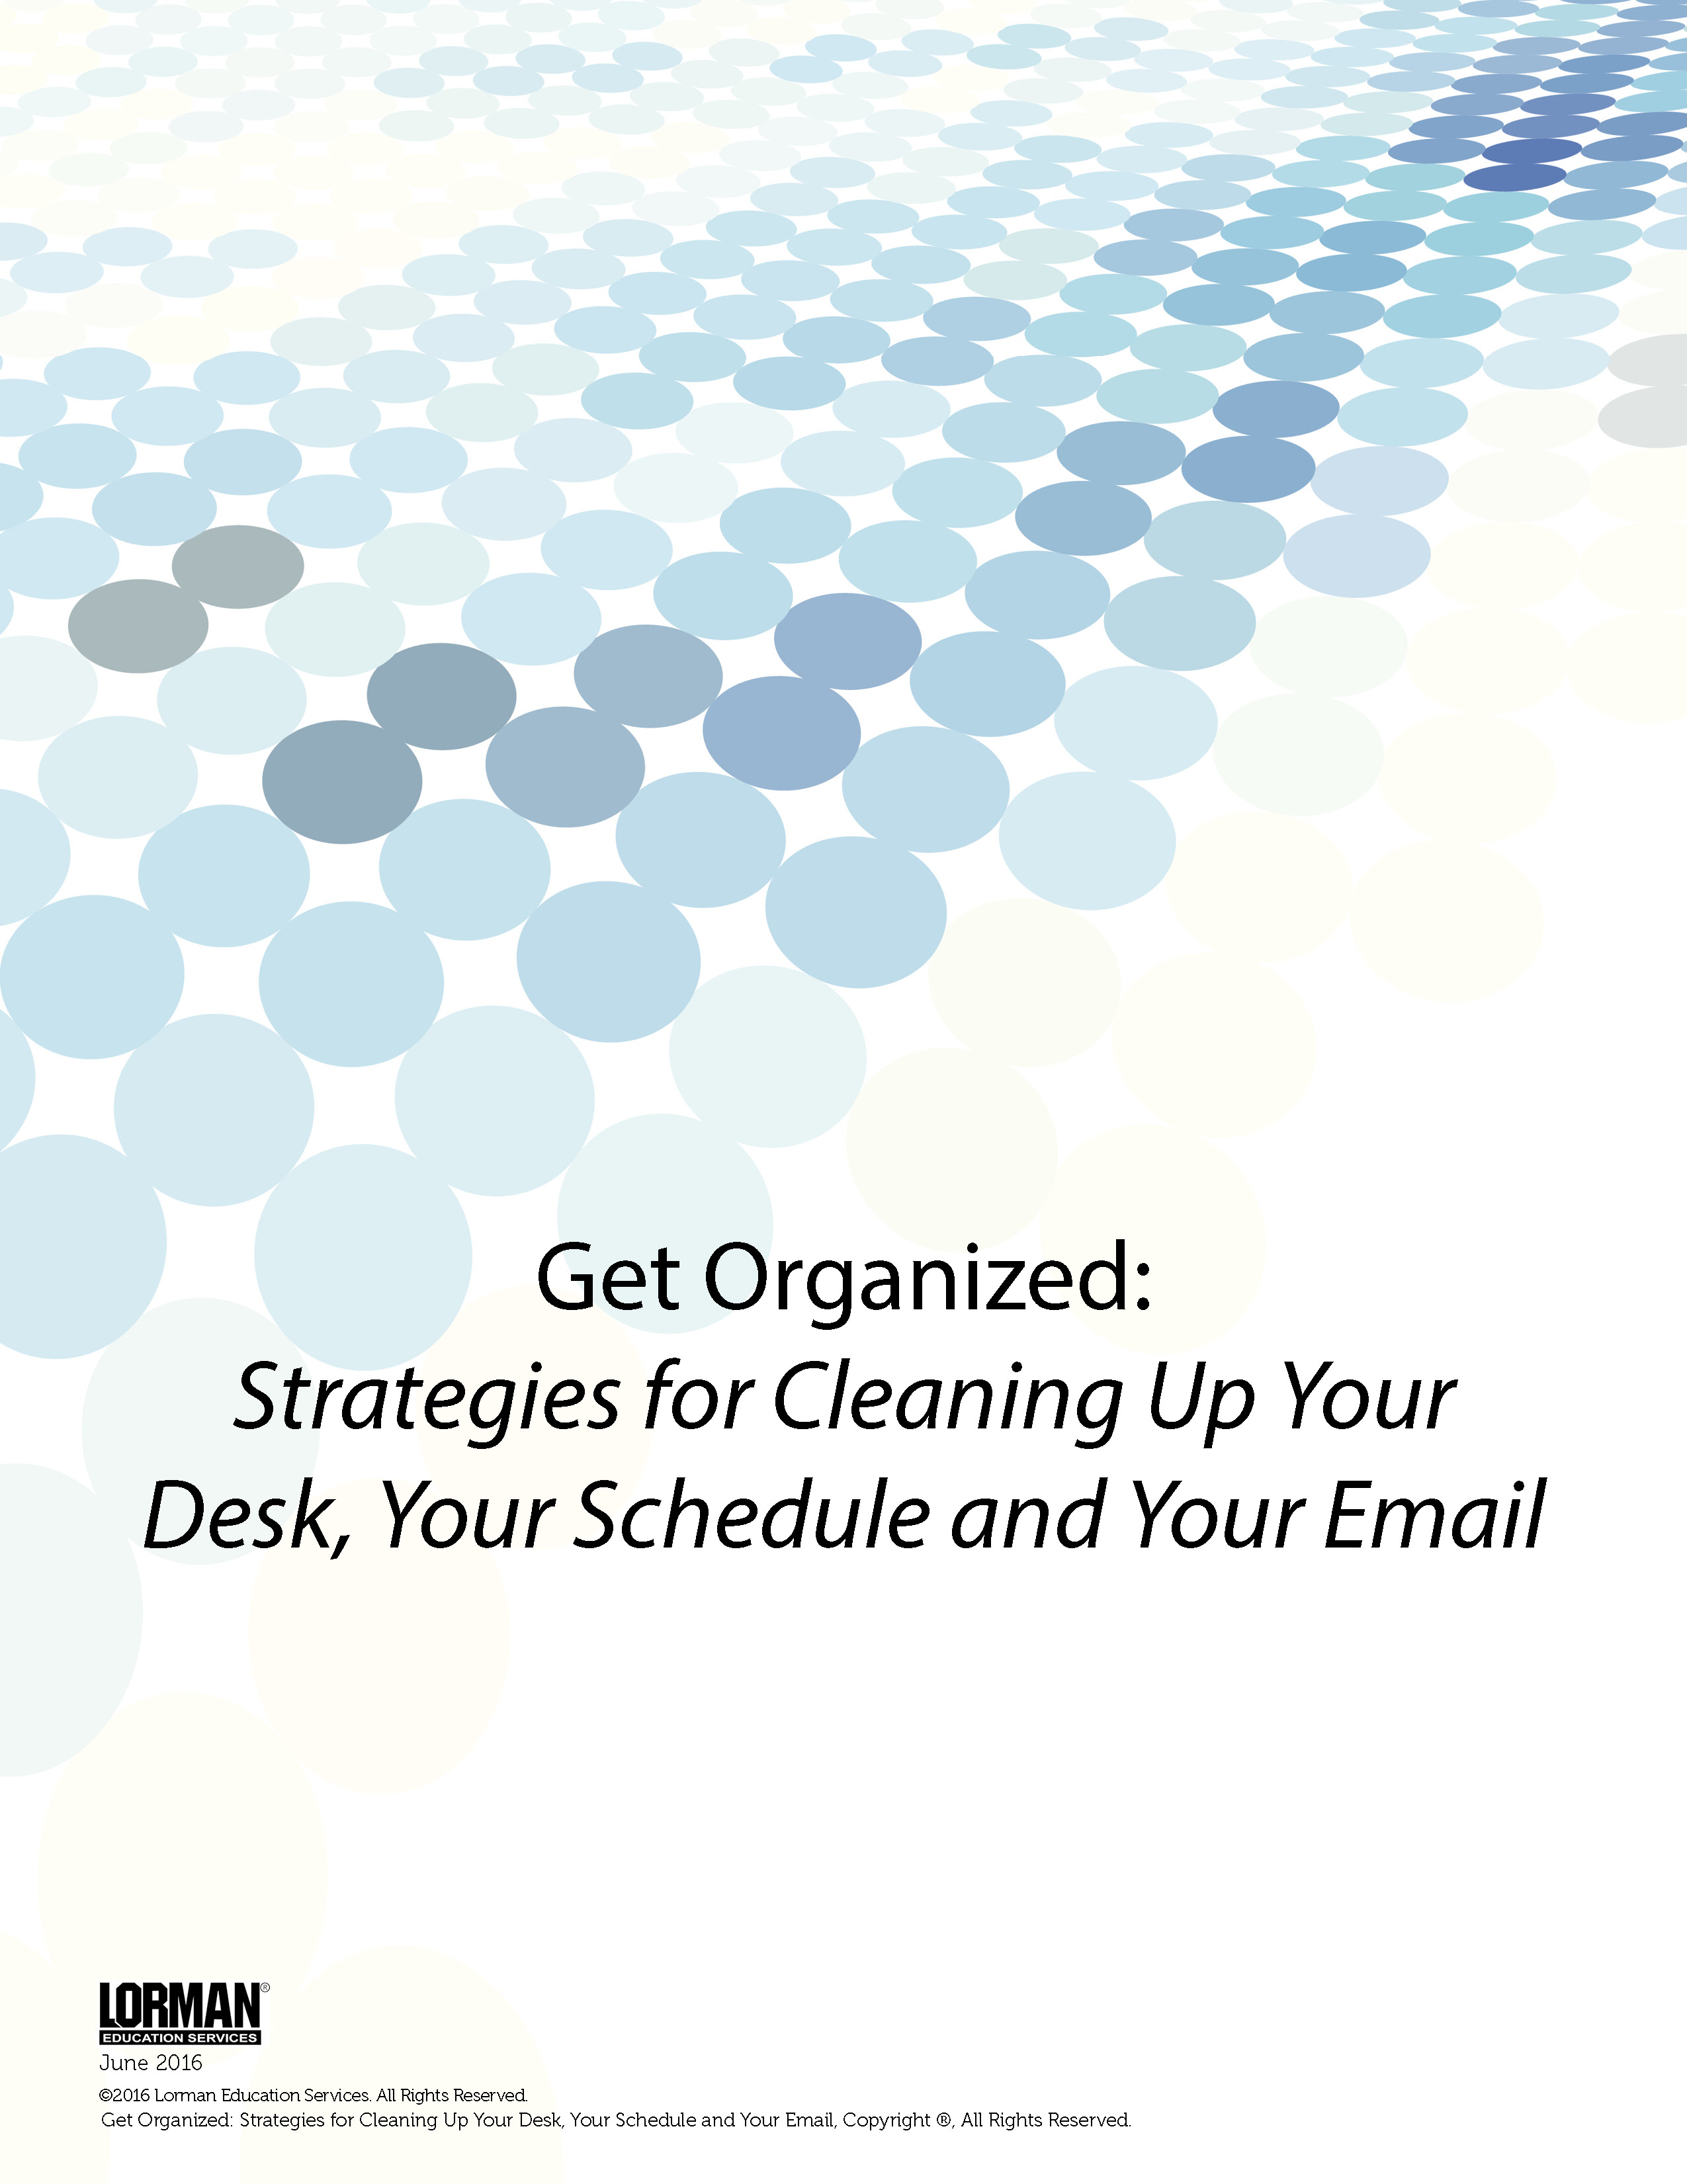 Get Organized: Strategies for Cleaning Up Your Desk, Your Schedule and Your Email